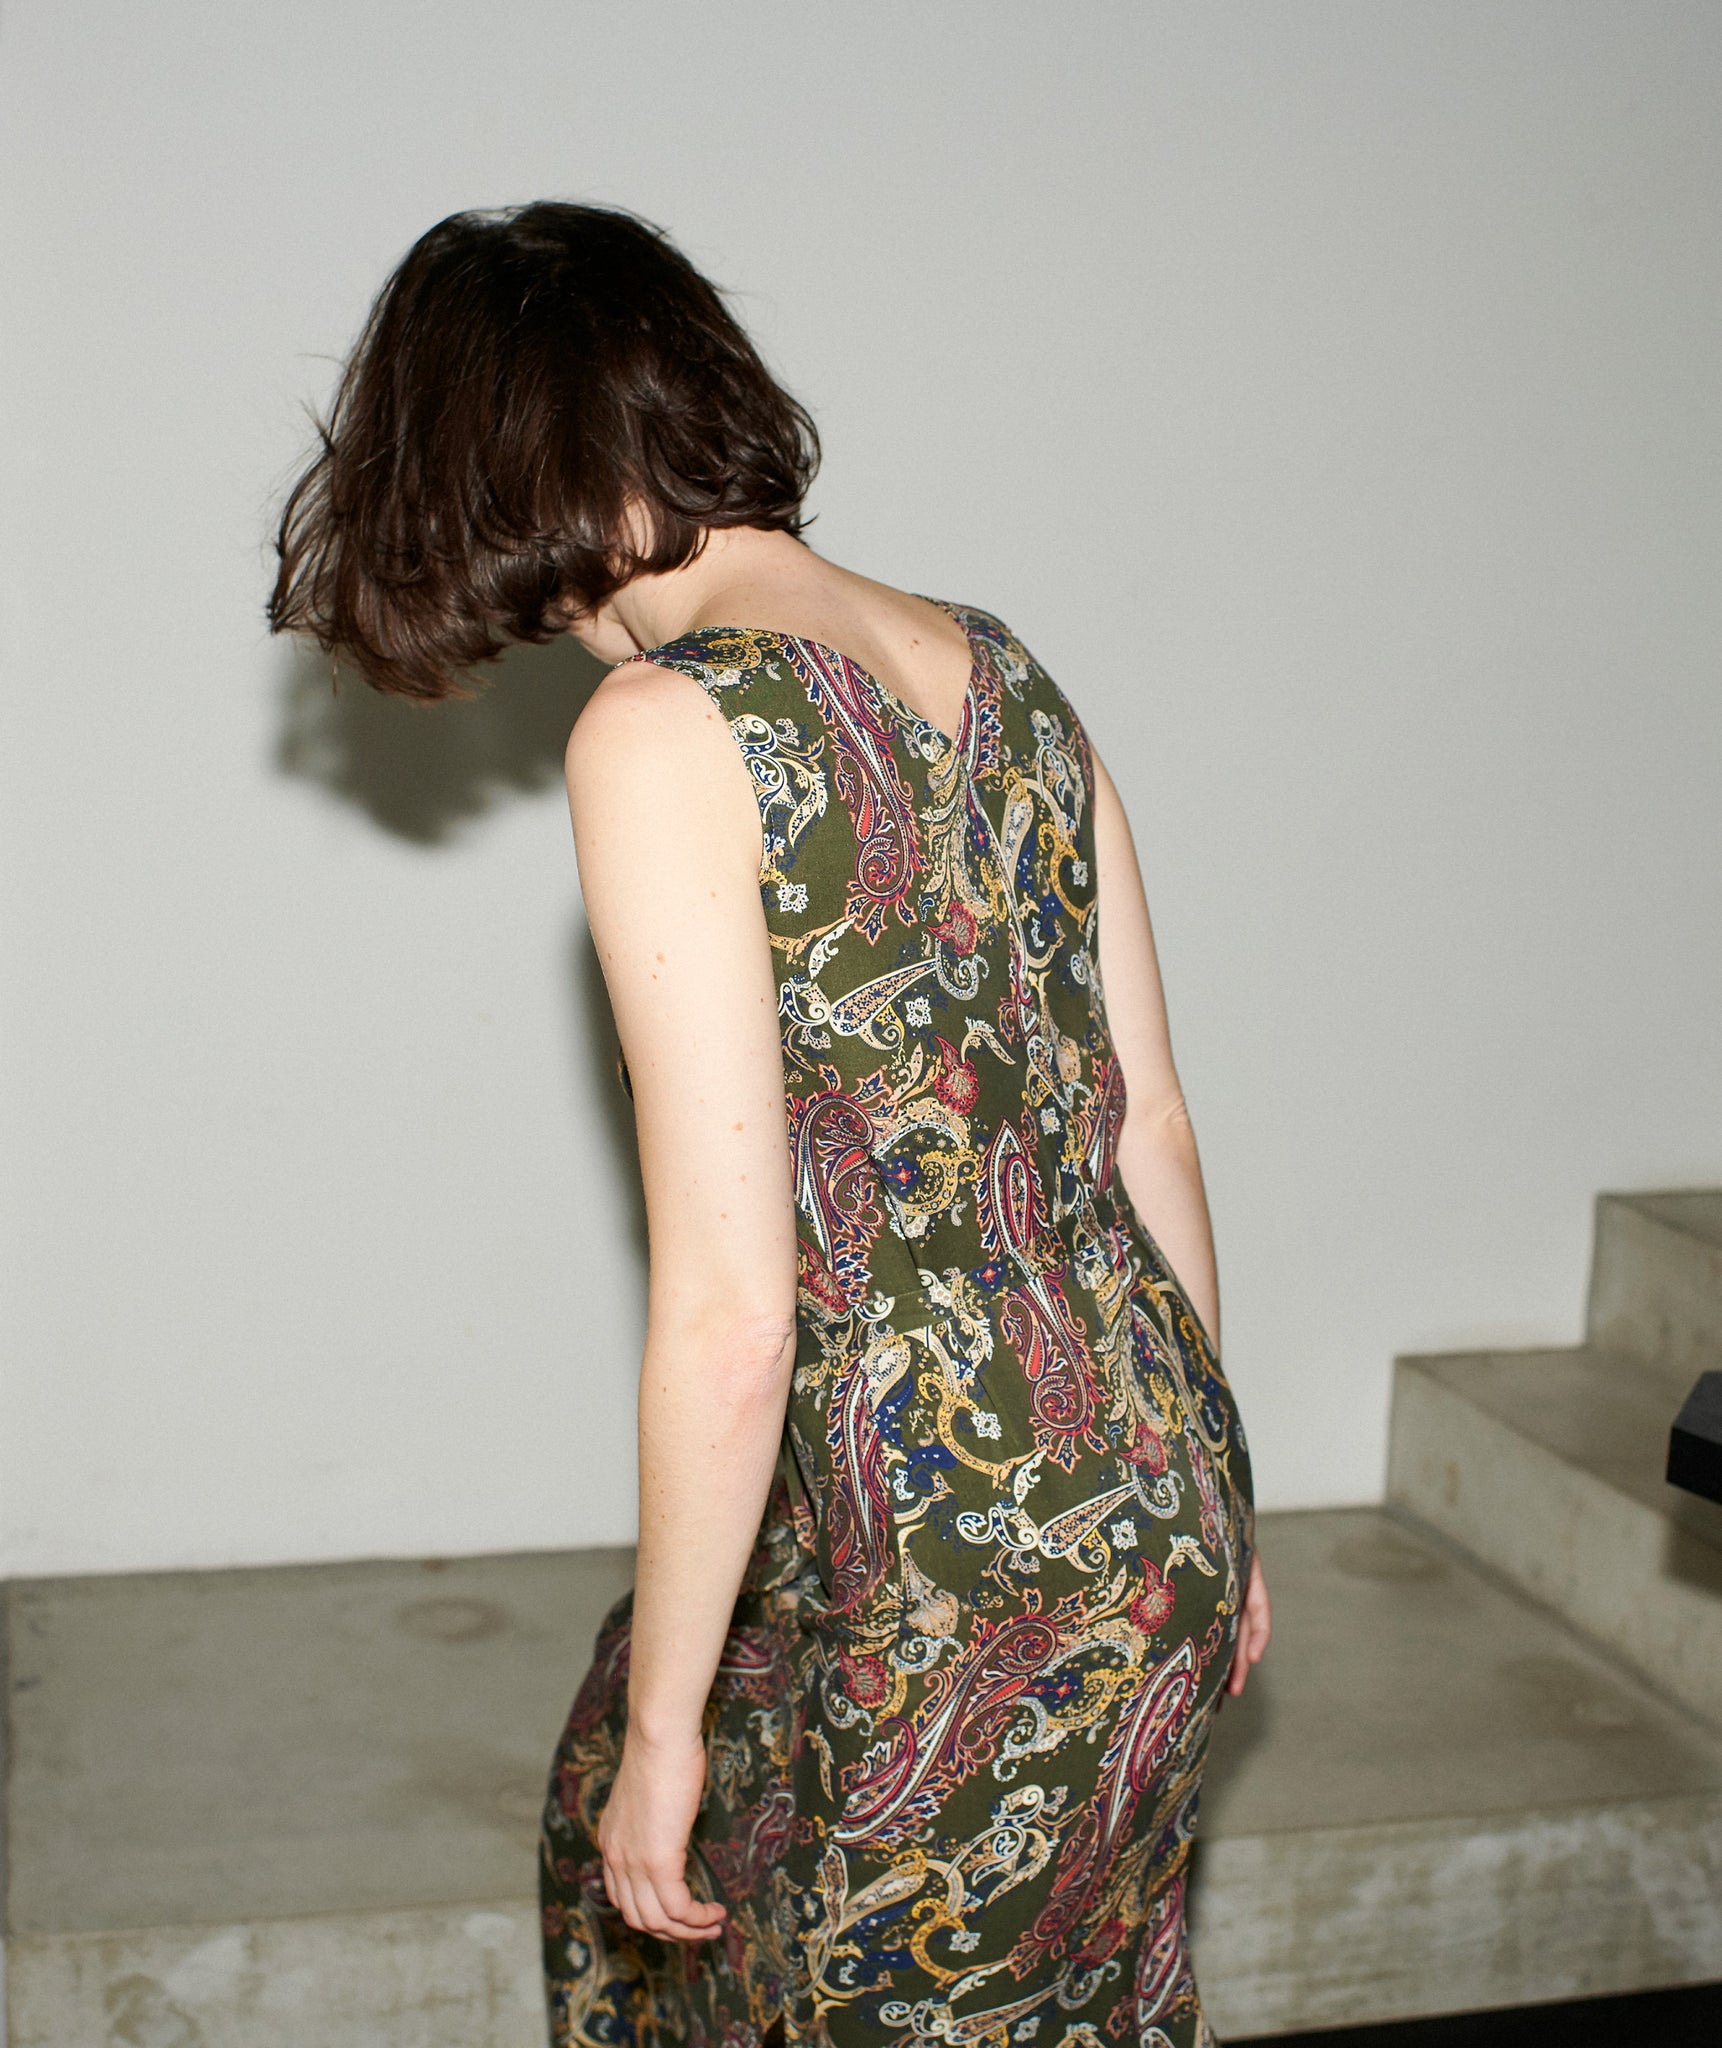 V-SUMMER DRESS khaki paisley